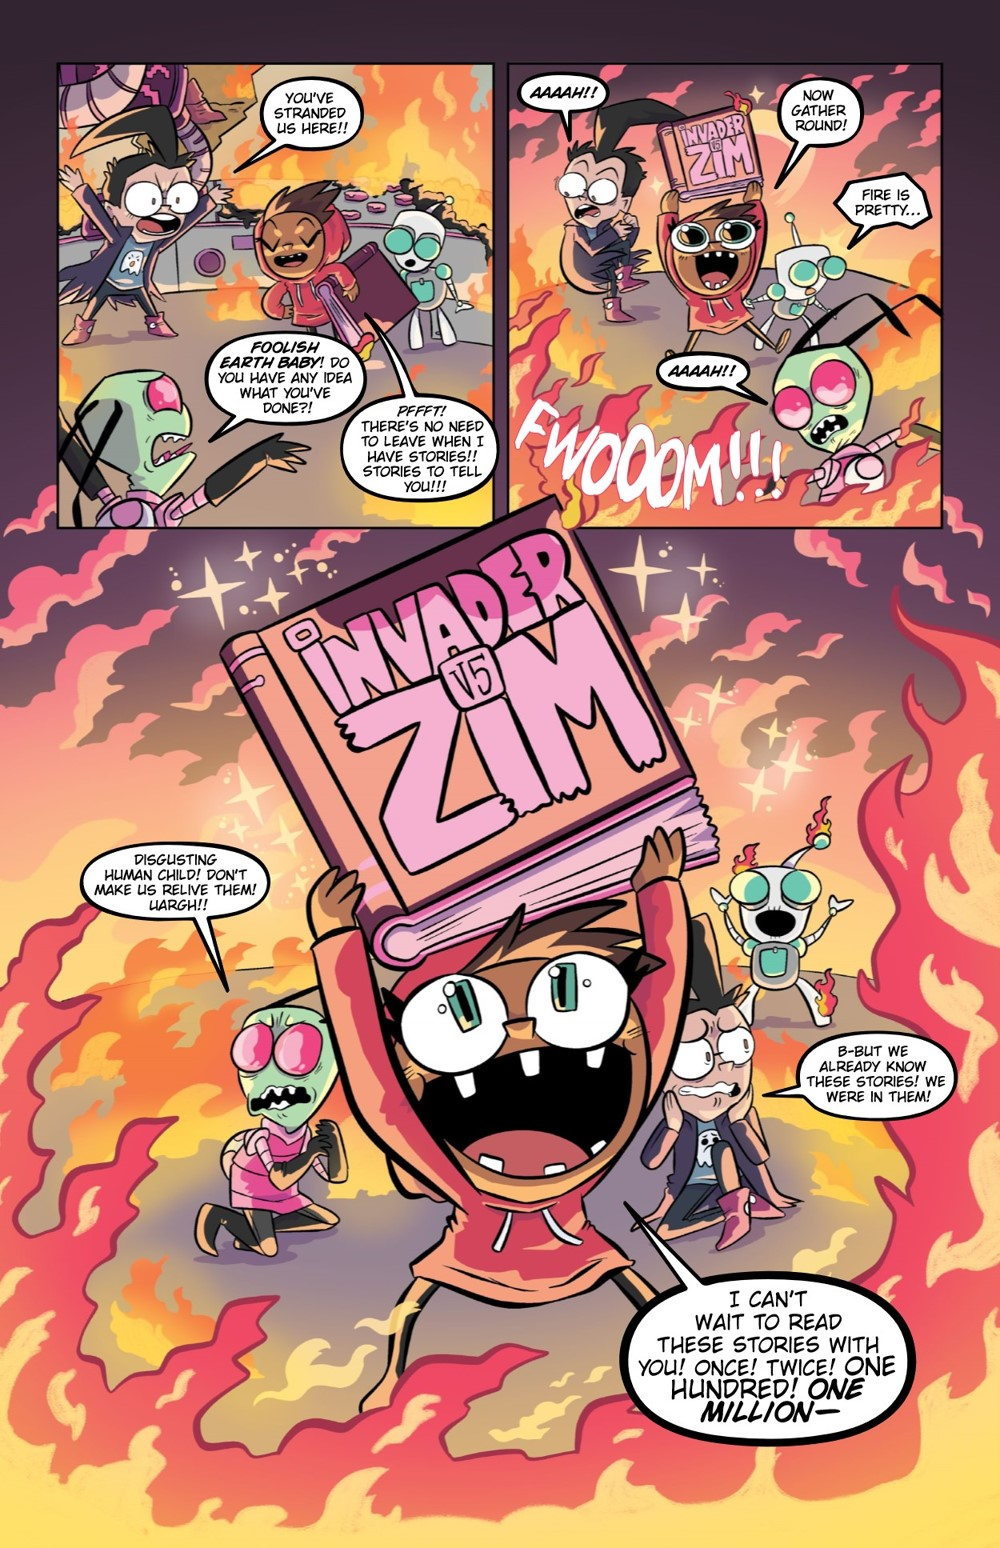 INVADERZIM5-HC-REFERENCE-011 ComicList Previews: INVADER ZIM DELUXE EDITION VOLUME 5 HC